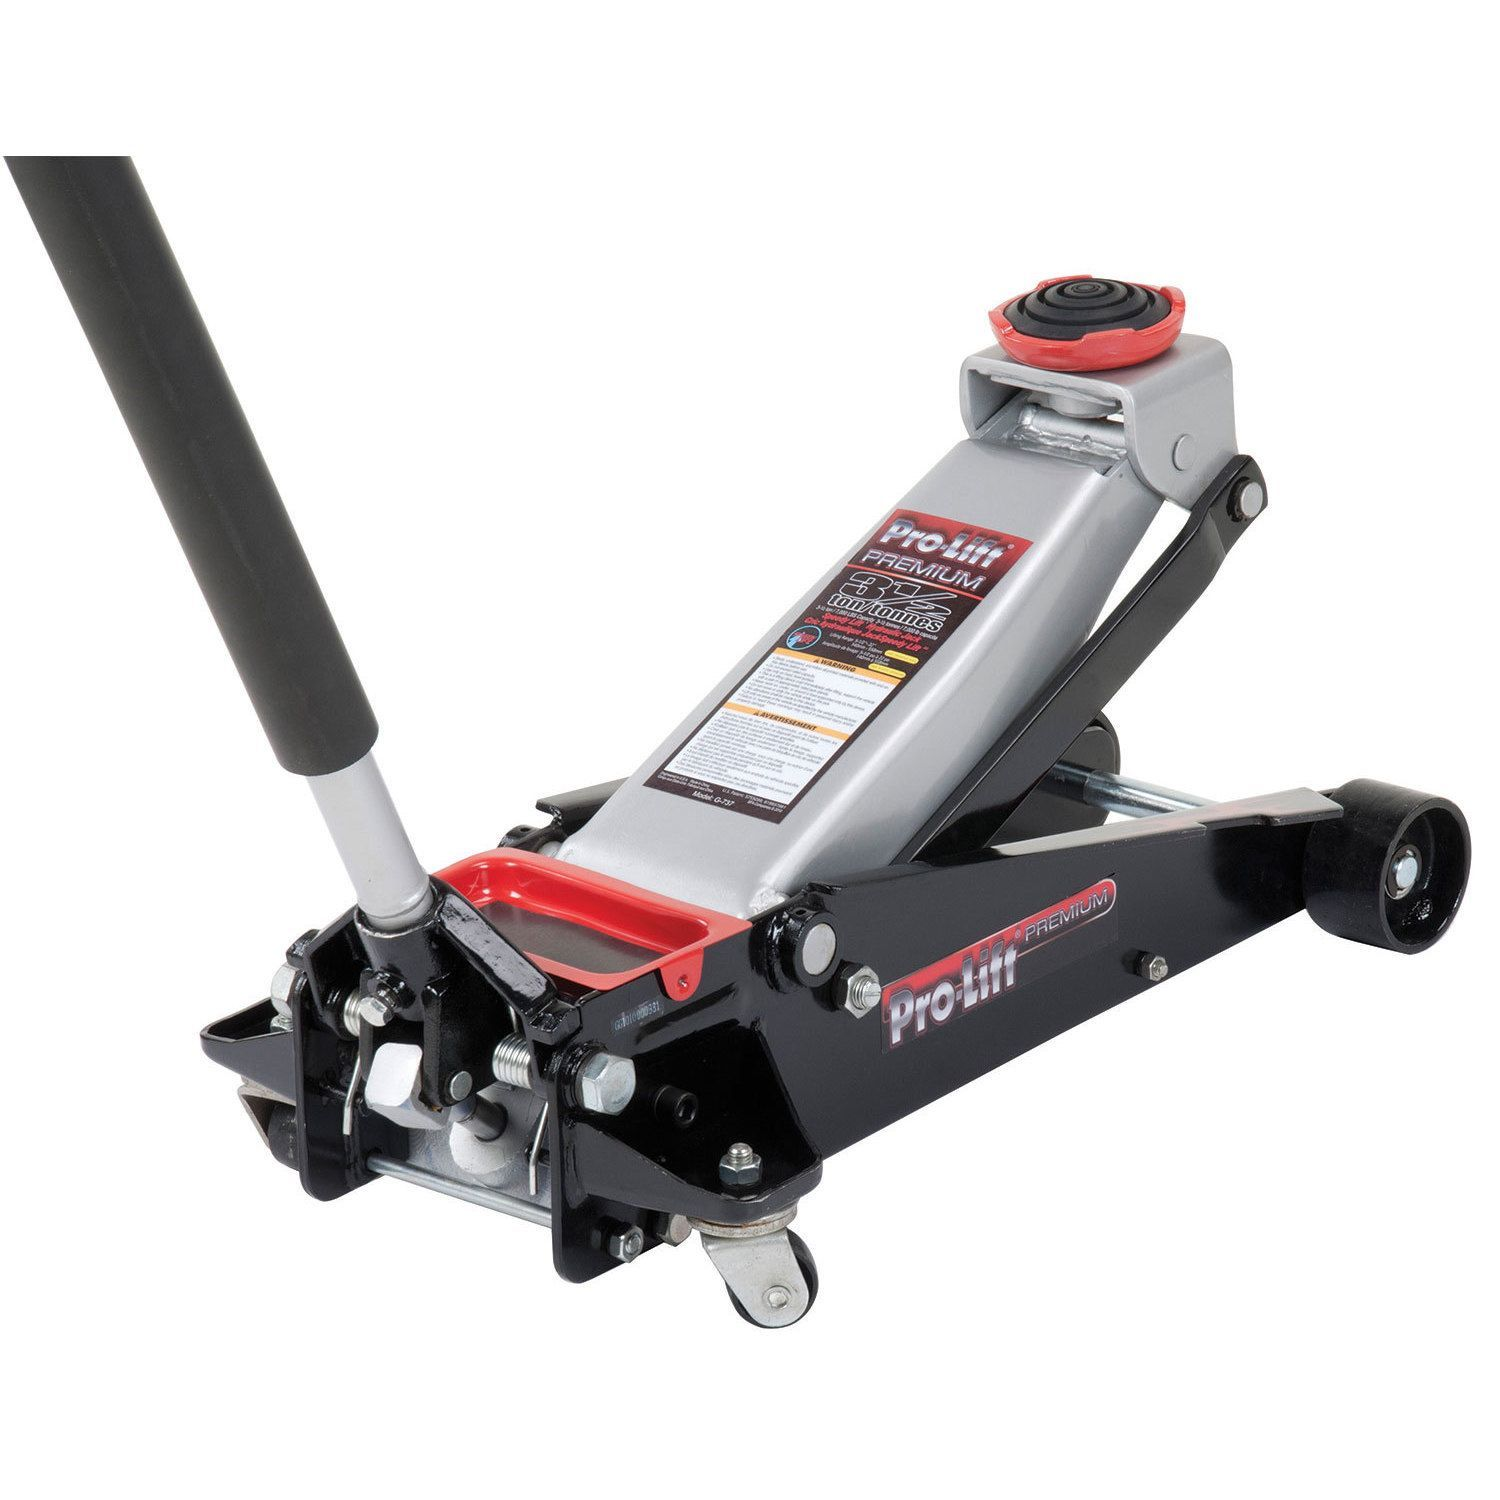 Height Pro Lift G 737 Black Silver Red 3 5 Ton Professional Grade Speedy Lift Garage Jack Lifted Cars Lifted Trucks Jack G